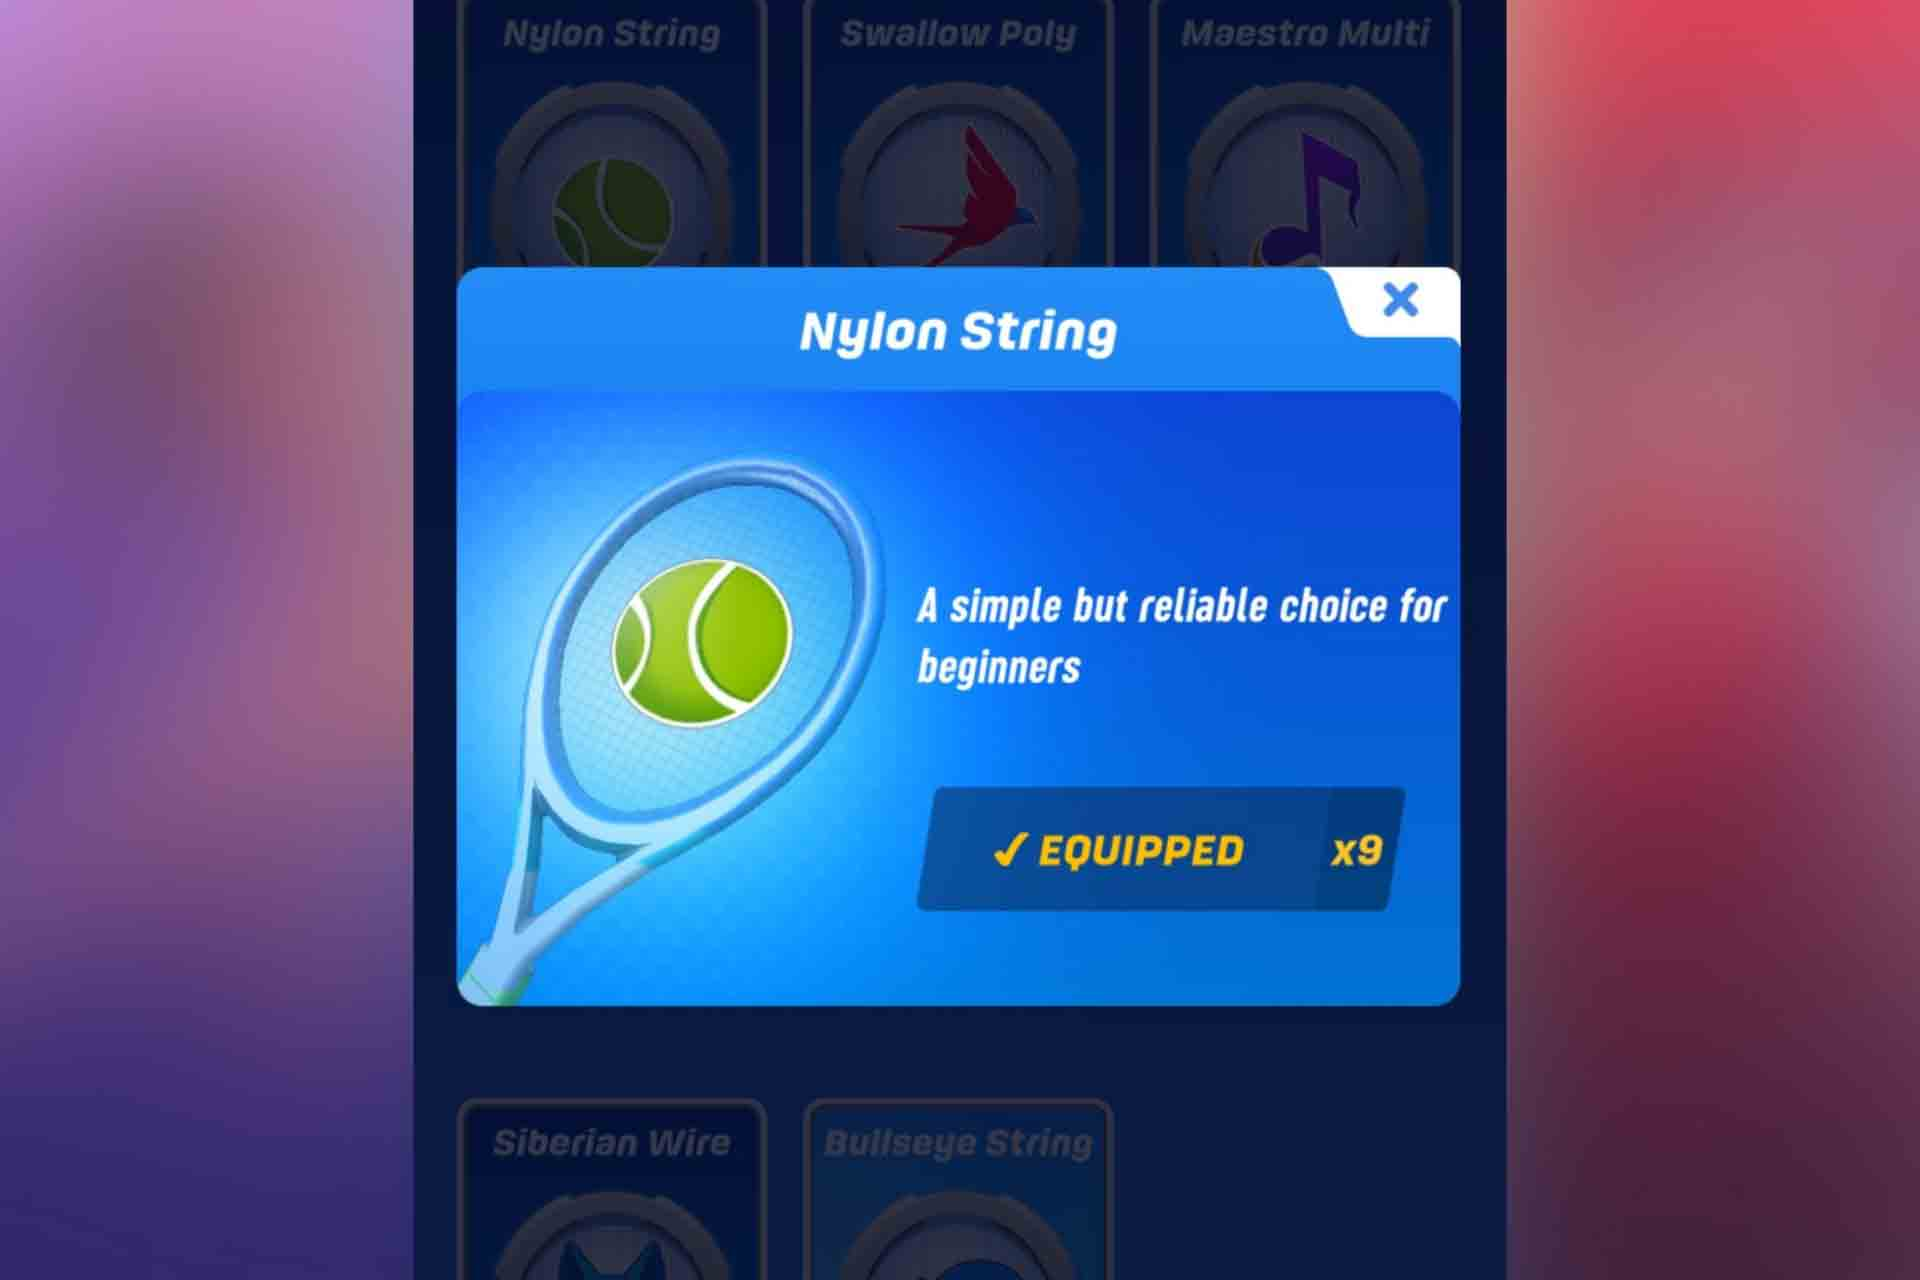 Nylon String in Tennis Clash is the basic string available that is simple but a reliable choice for beginners.